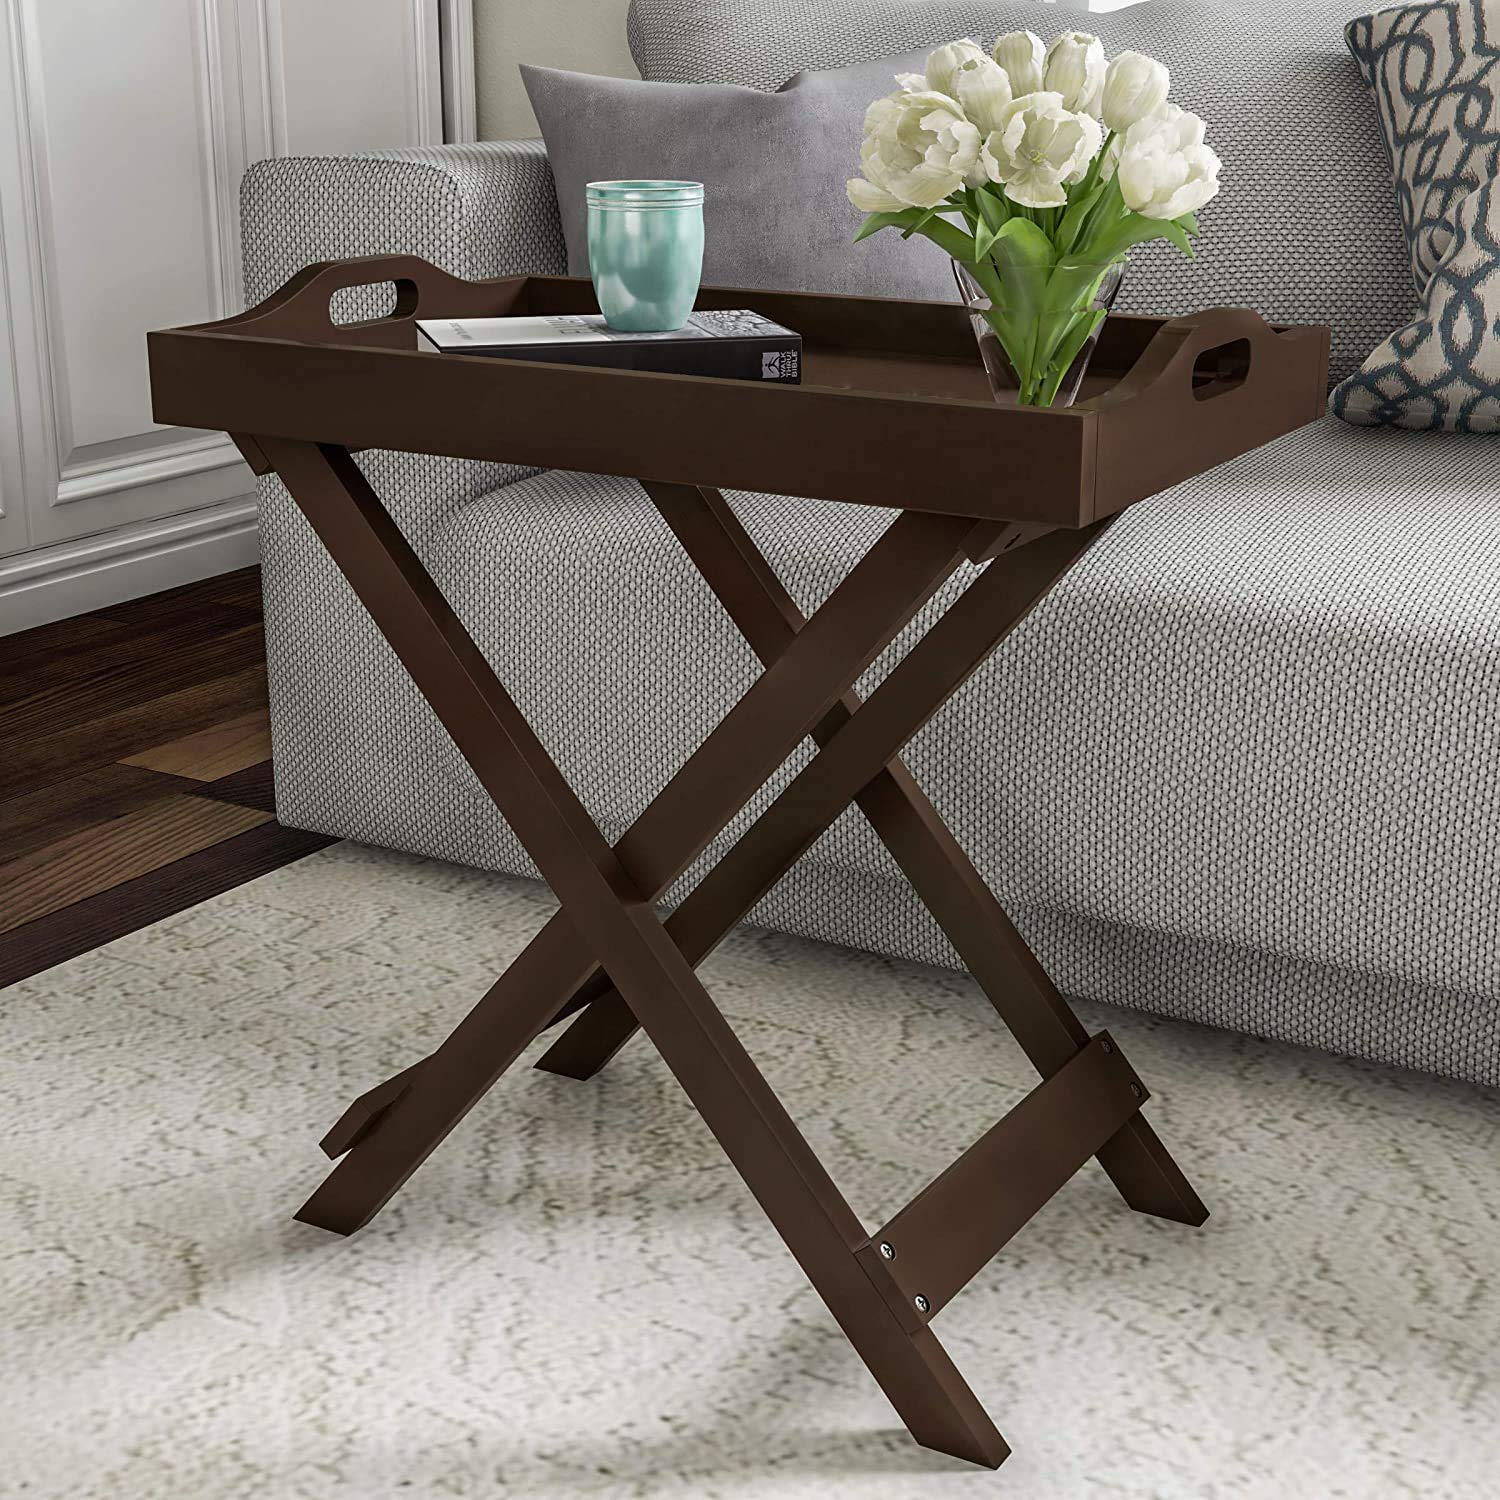 craft a to z Home Decorative Display and Accent Table Center Table Wooden (Brown)